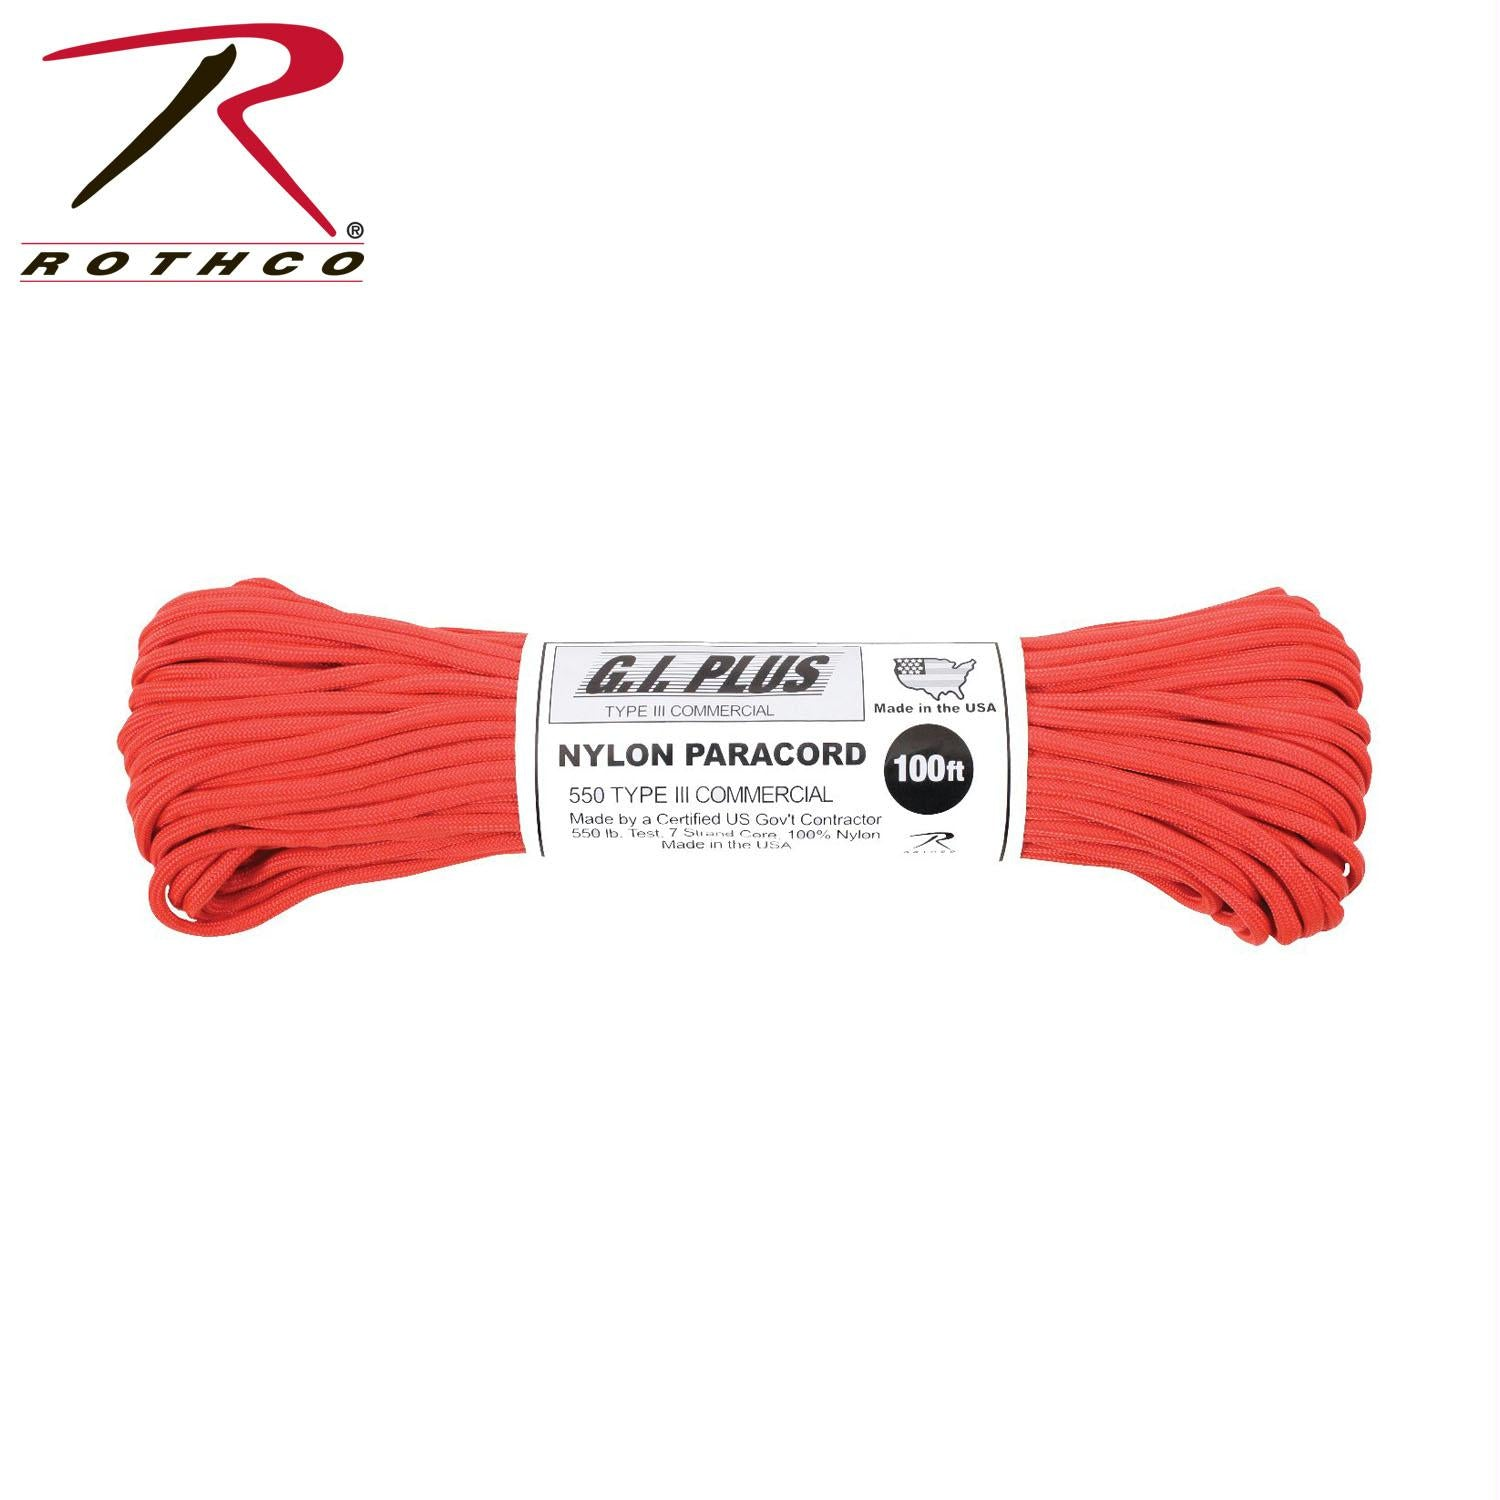 Rothco Nylon Paracord Type III 550 LB 100FT - Red